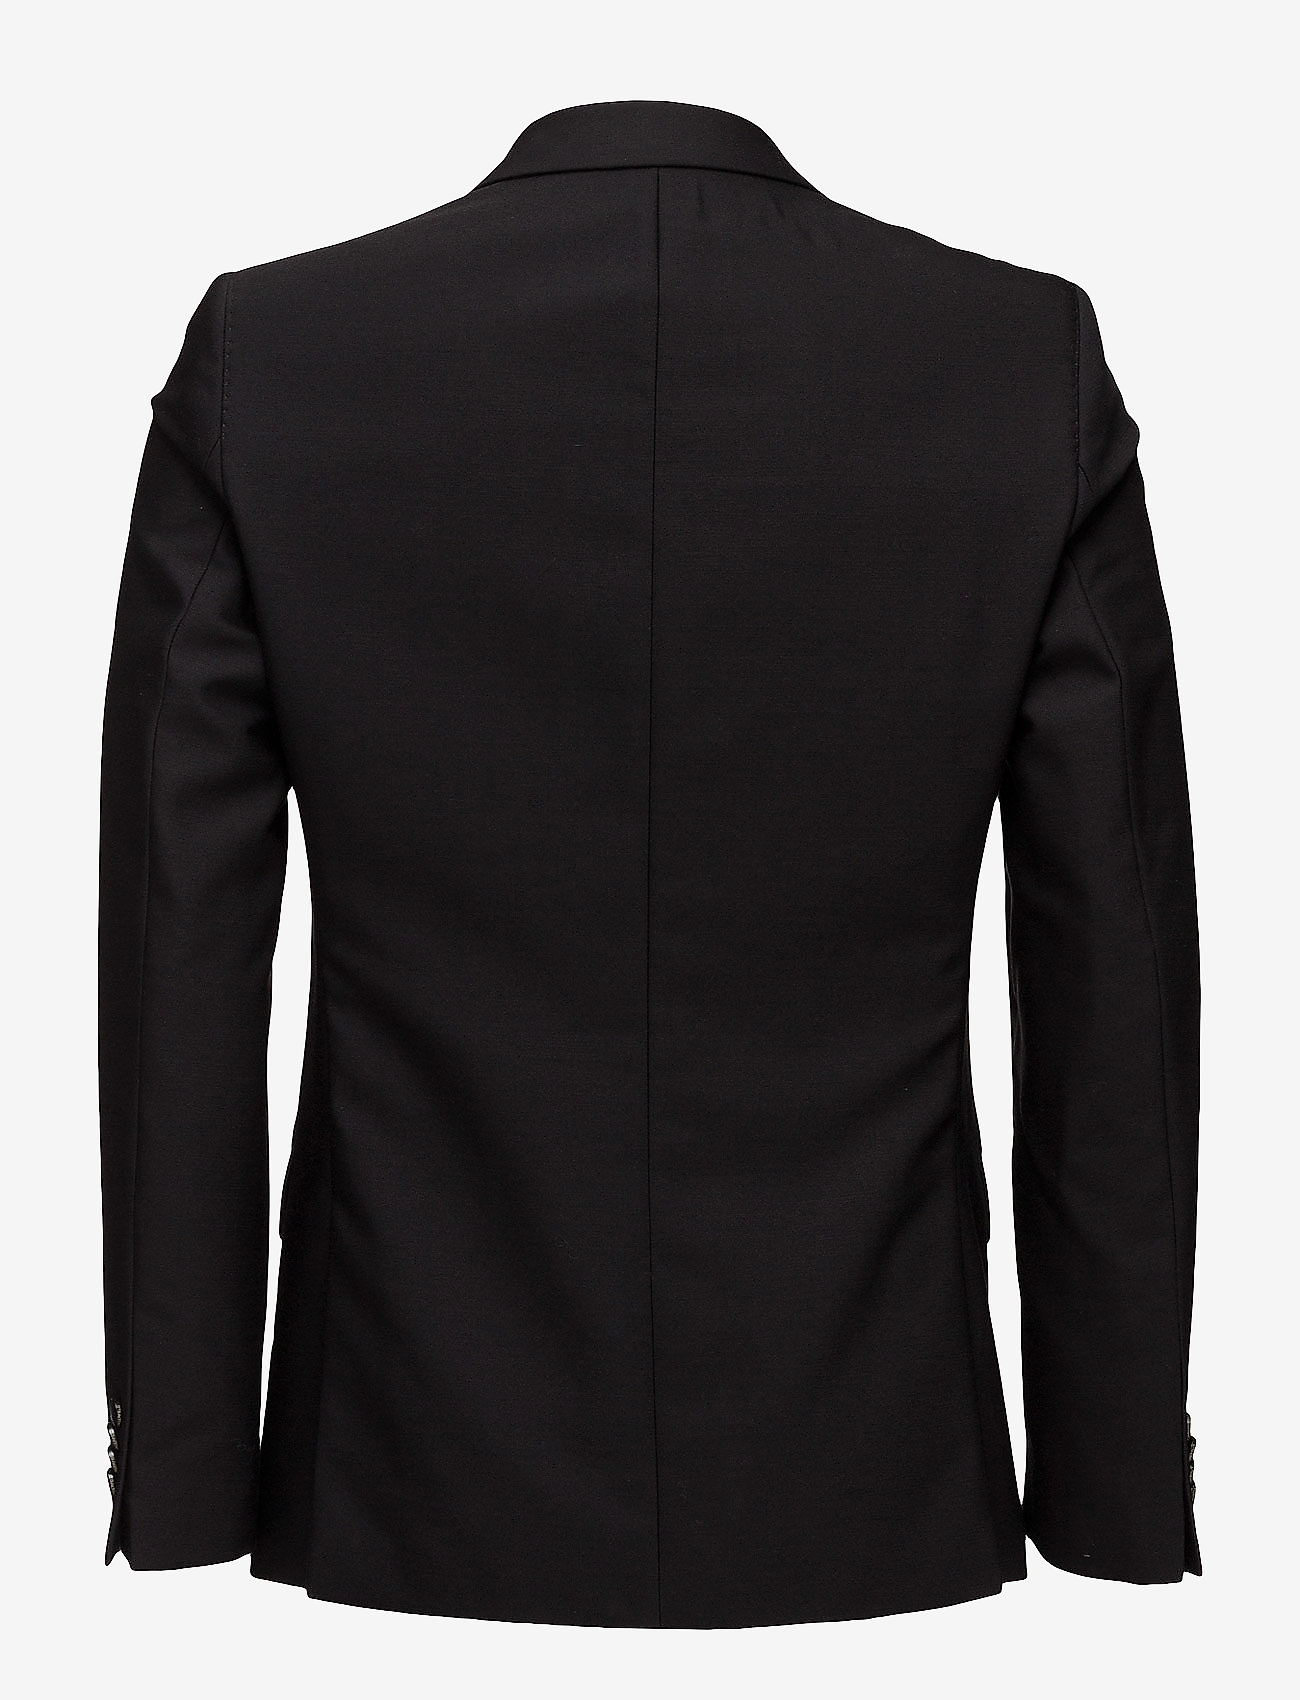 Lagerfeld Jacket Clever - Suits & Blazers